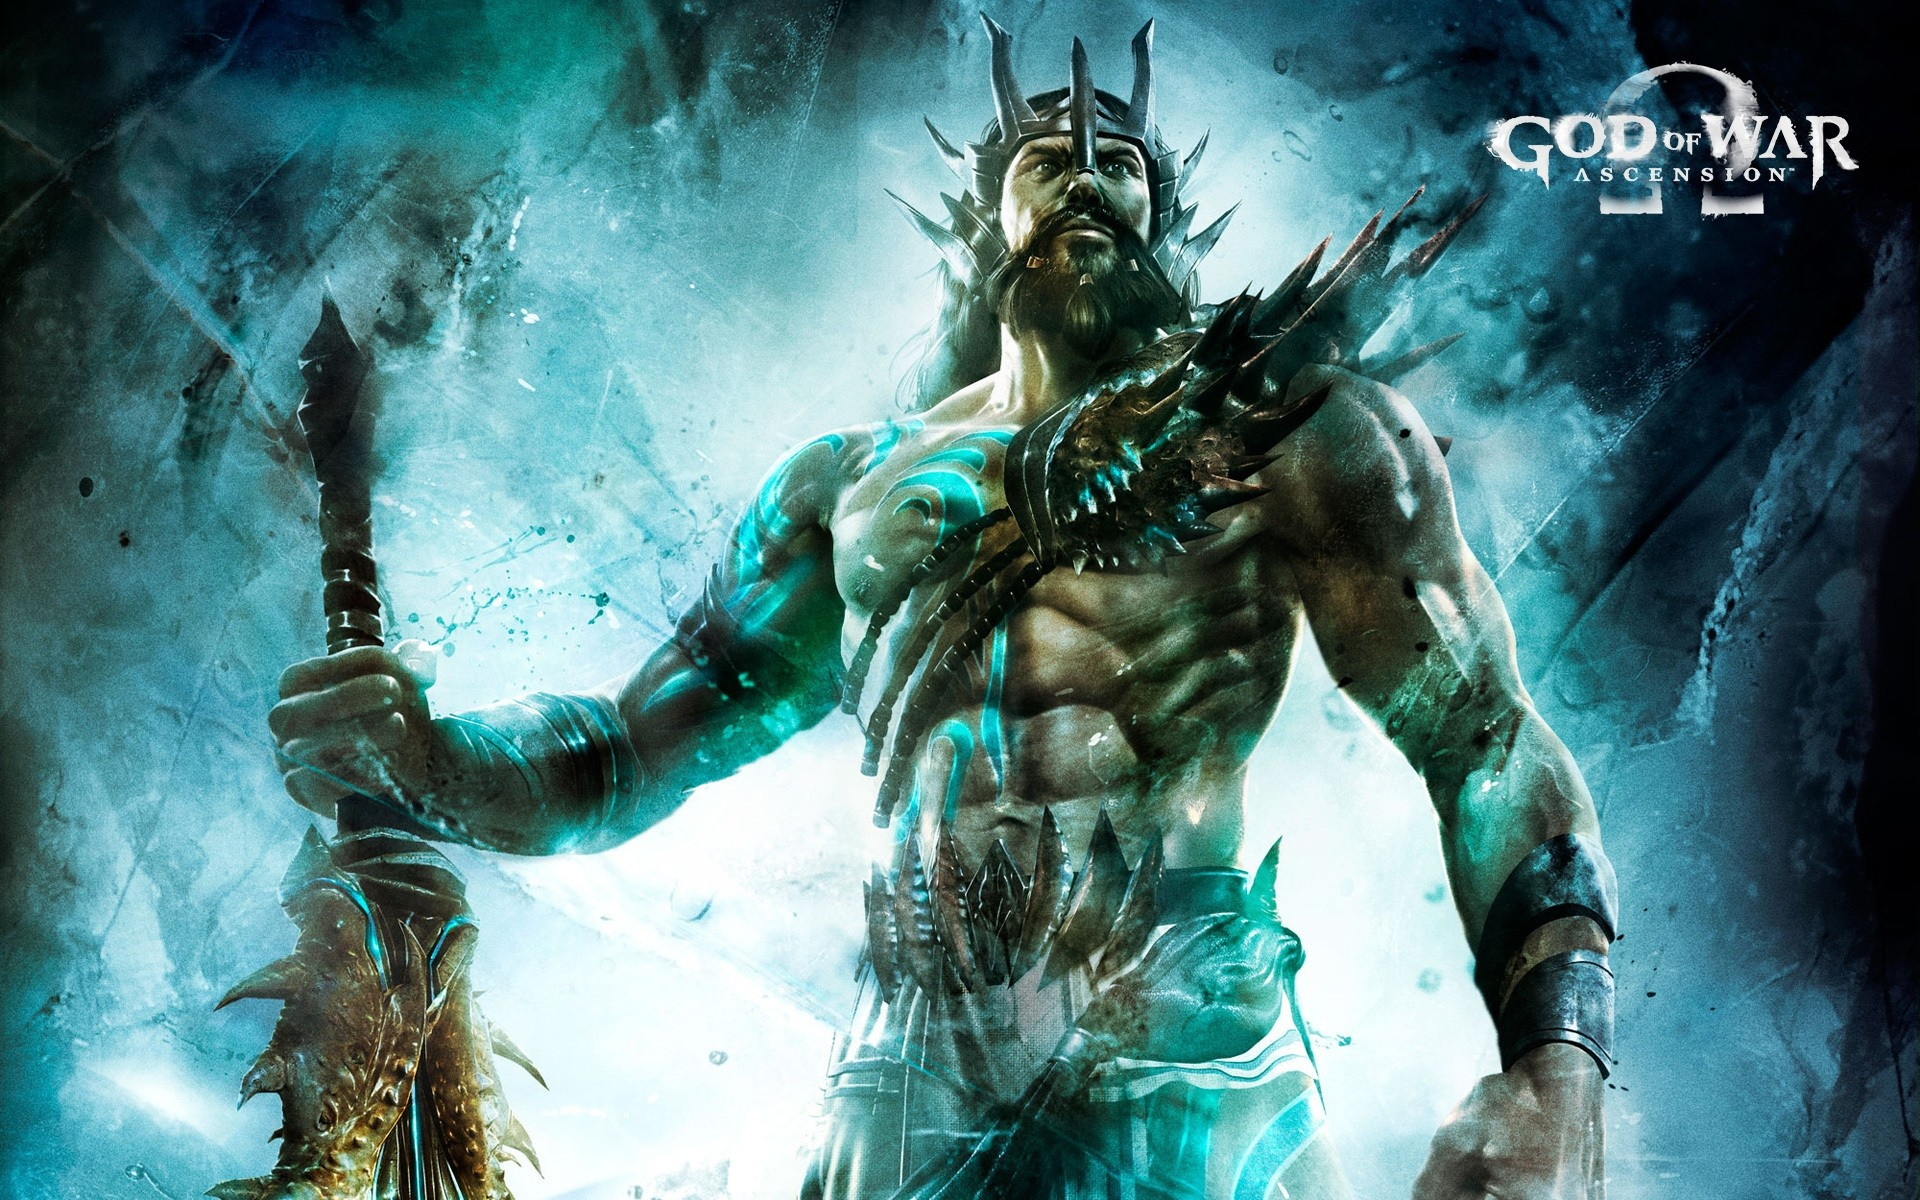 God Of War Ascension Poster Android Wallpapers